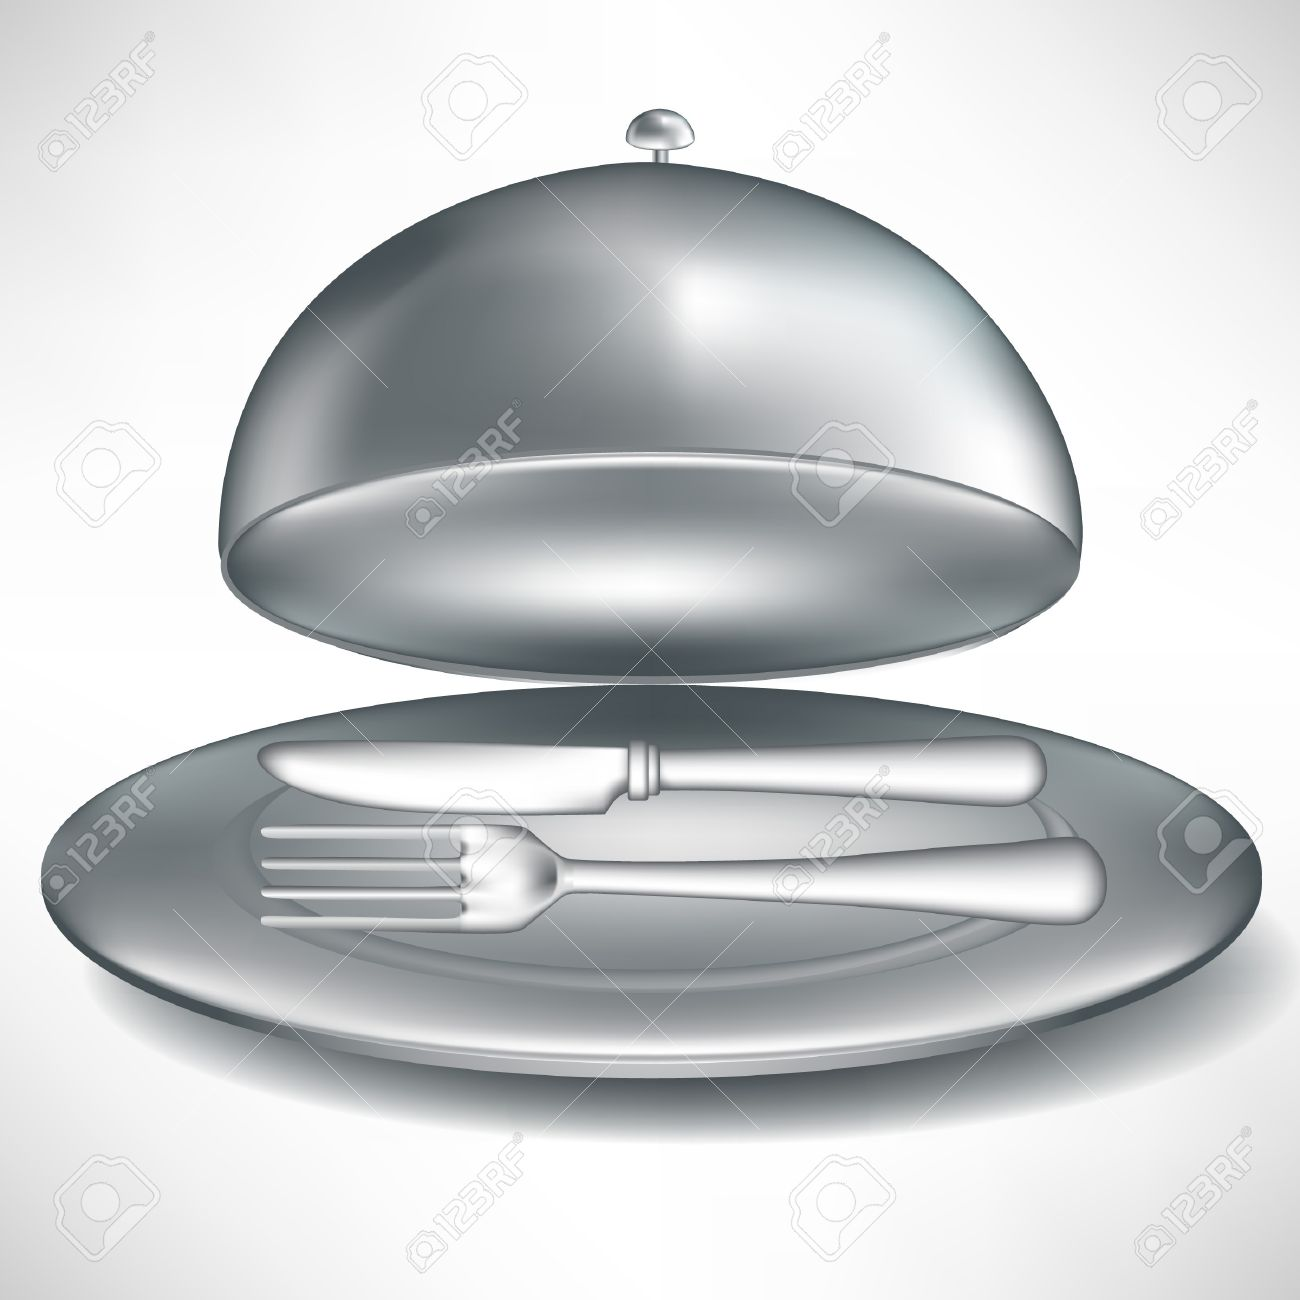 Free catering clipart.